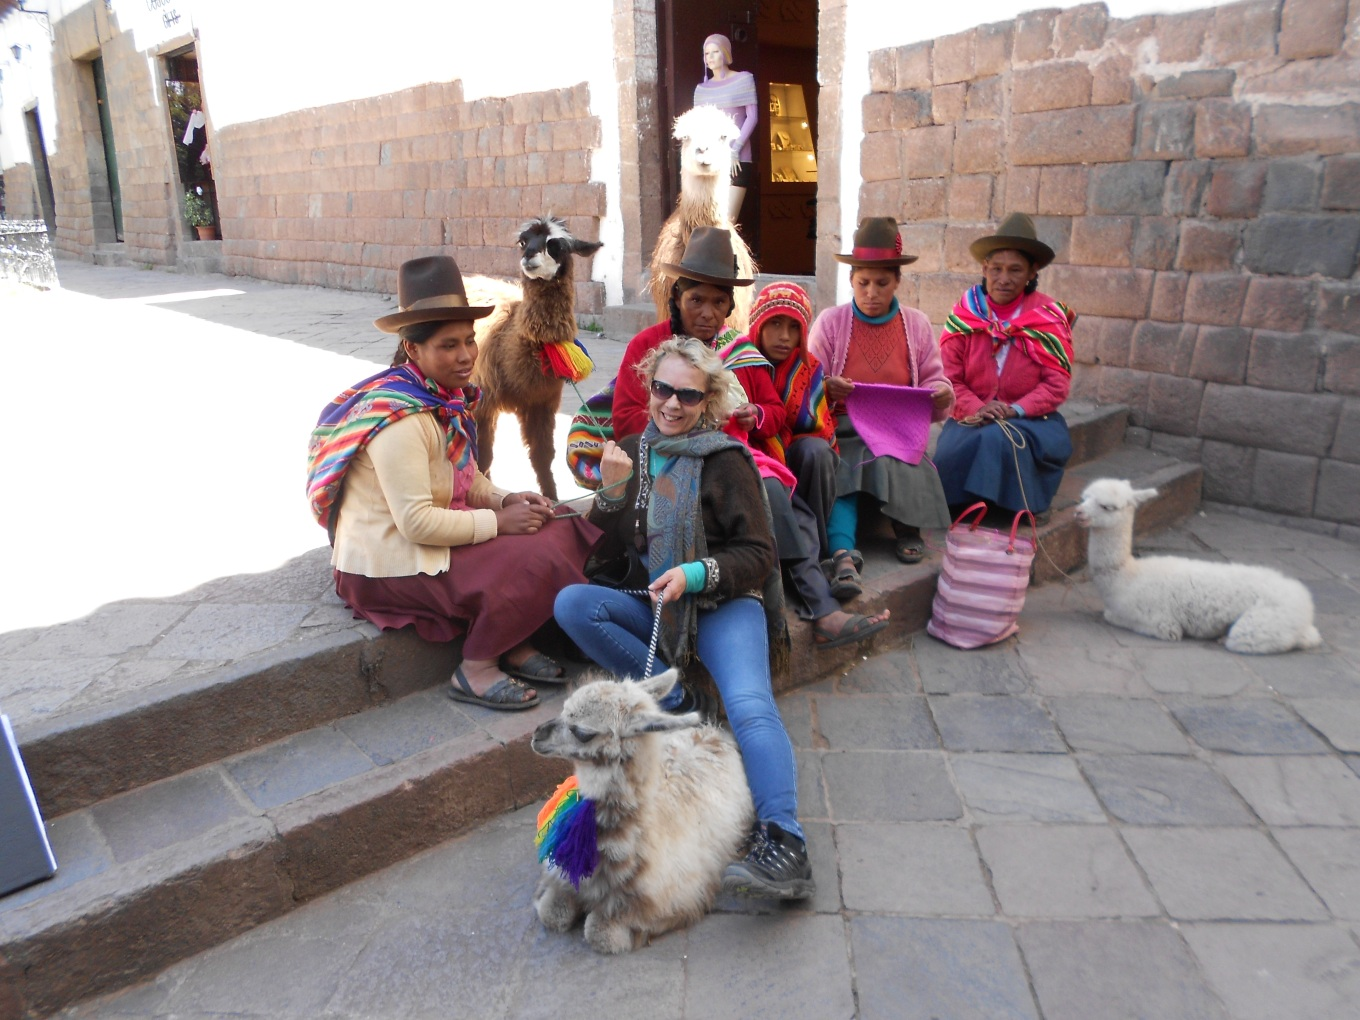 Cuzco art, mamacitas and llamas 017.JPG